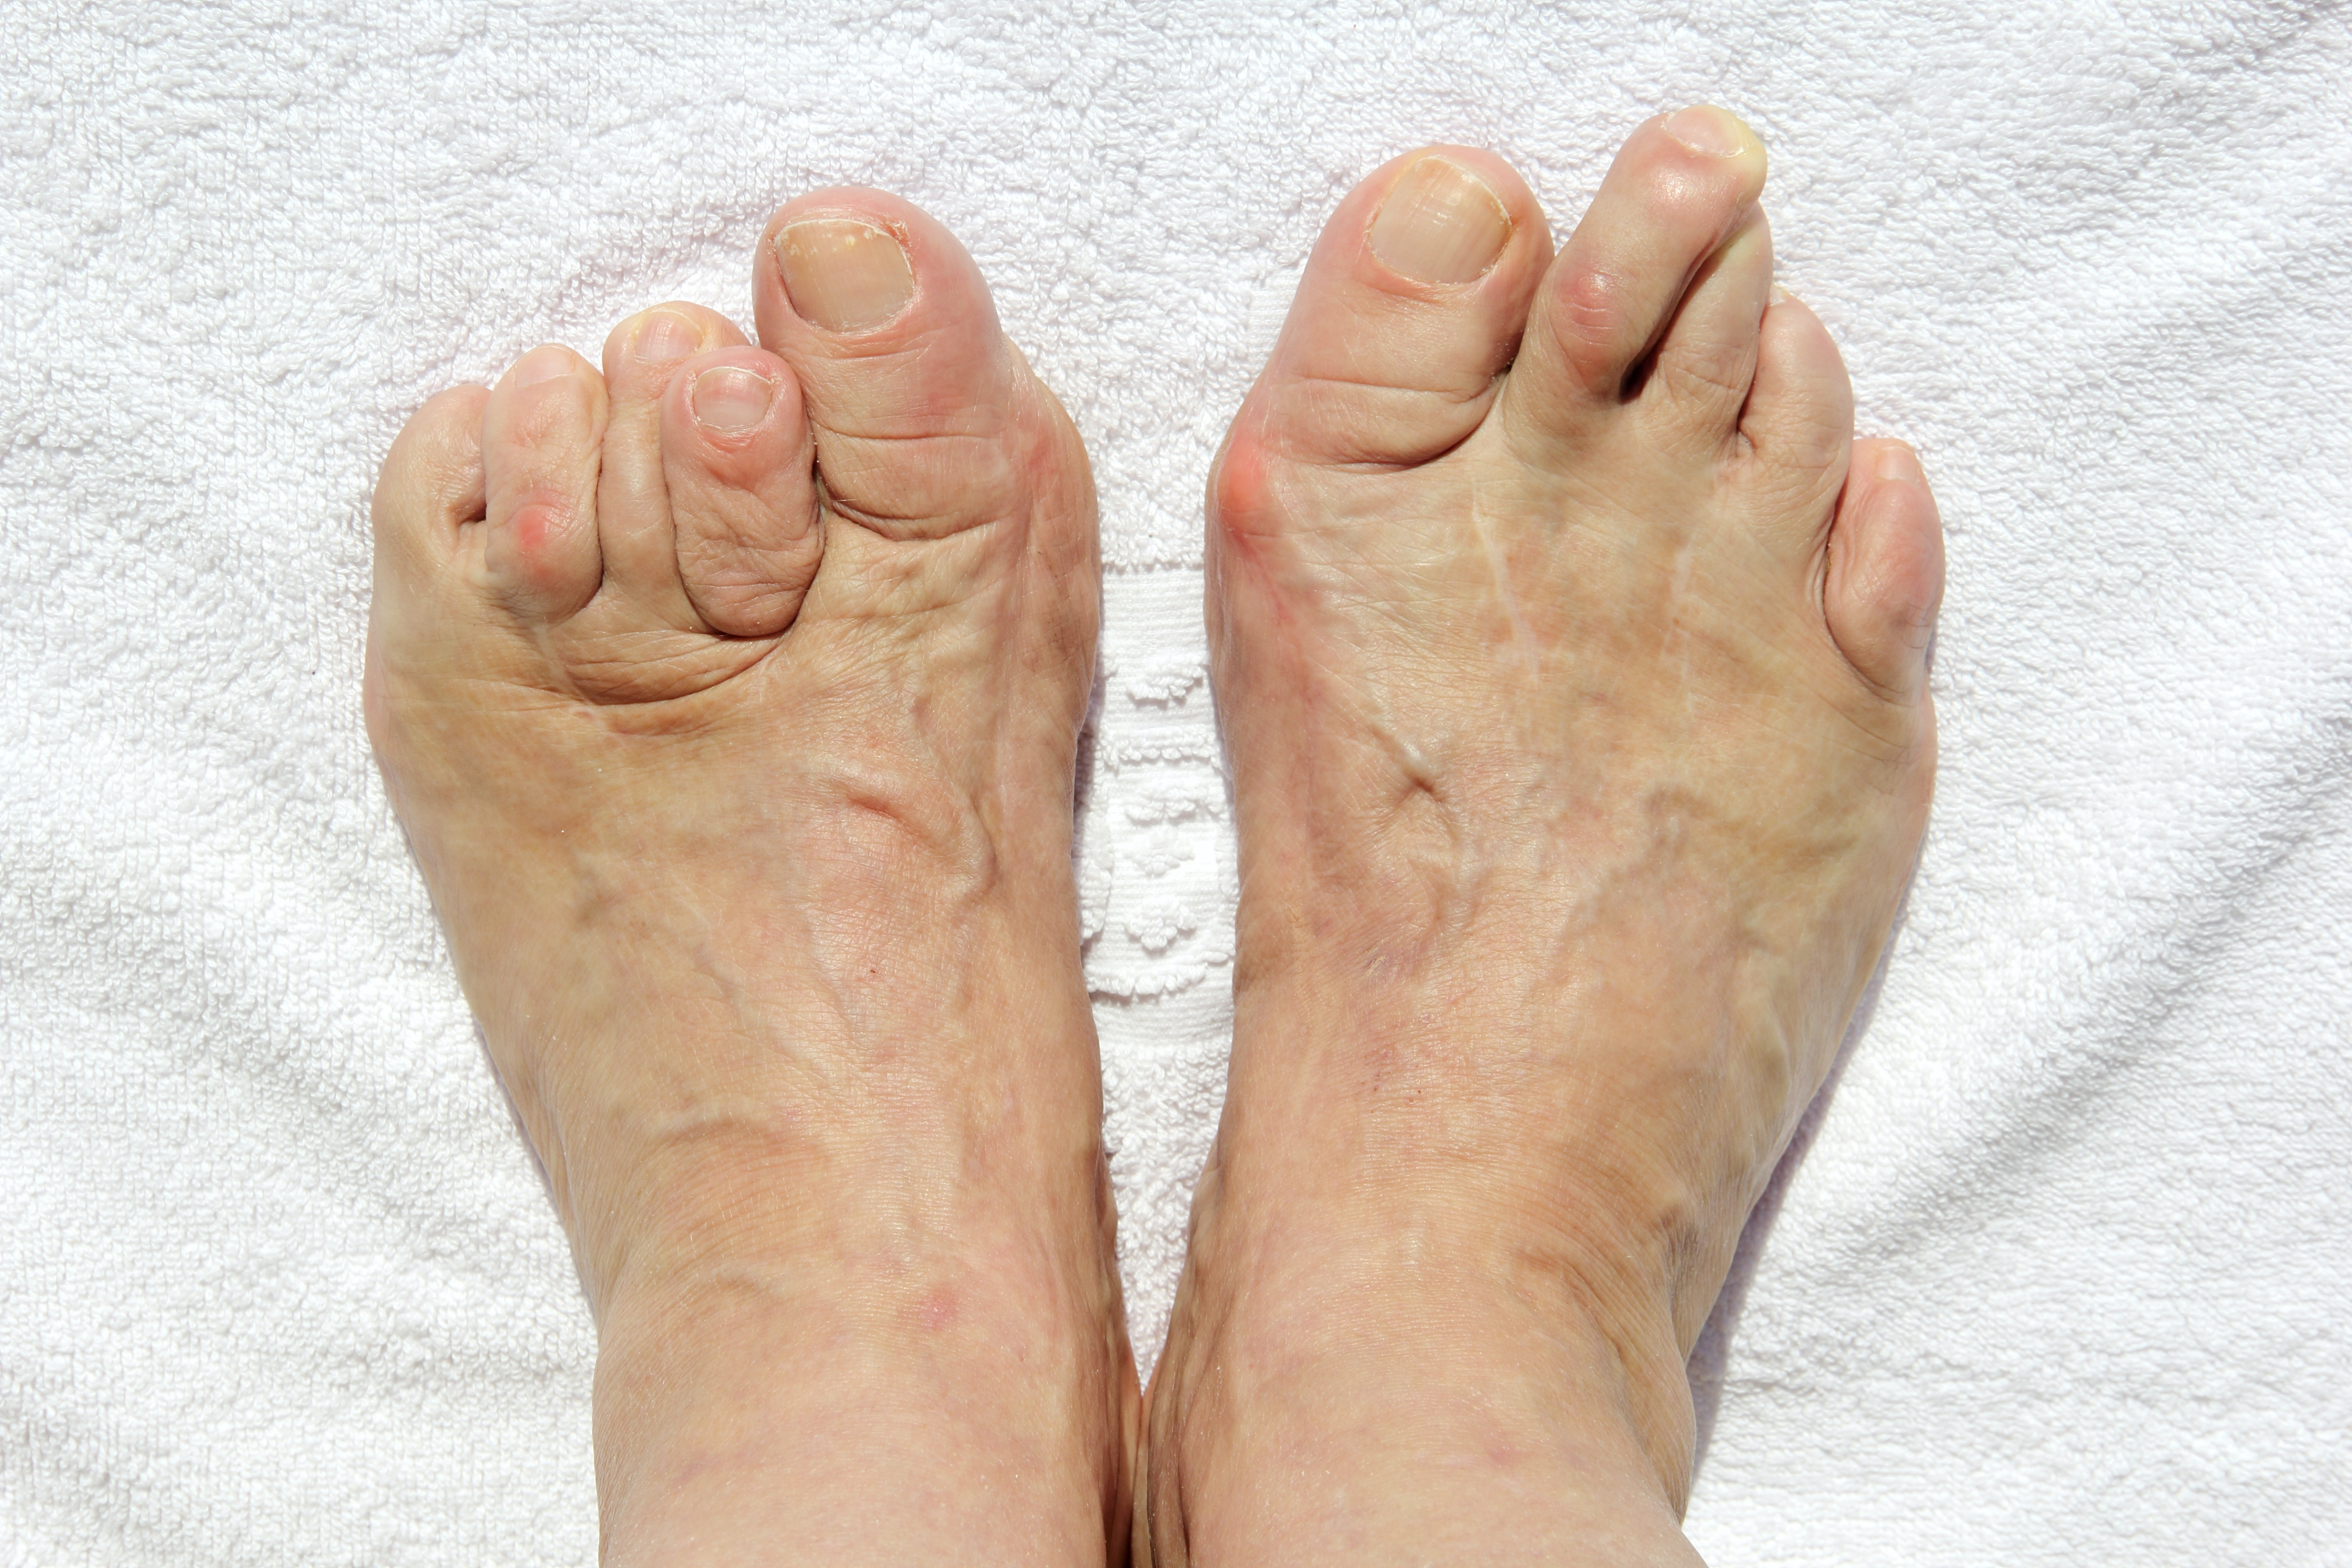 An image depicting a person suffering from foot deformity symptoms